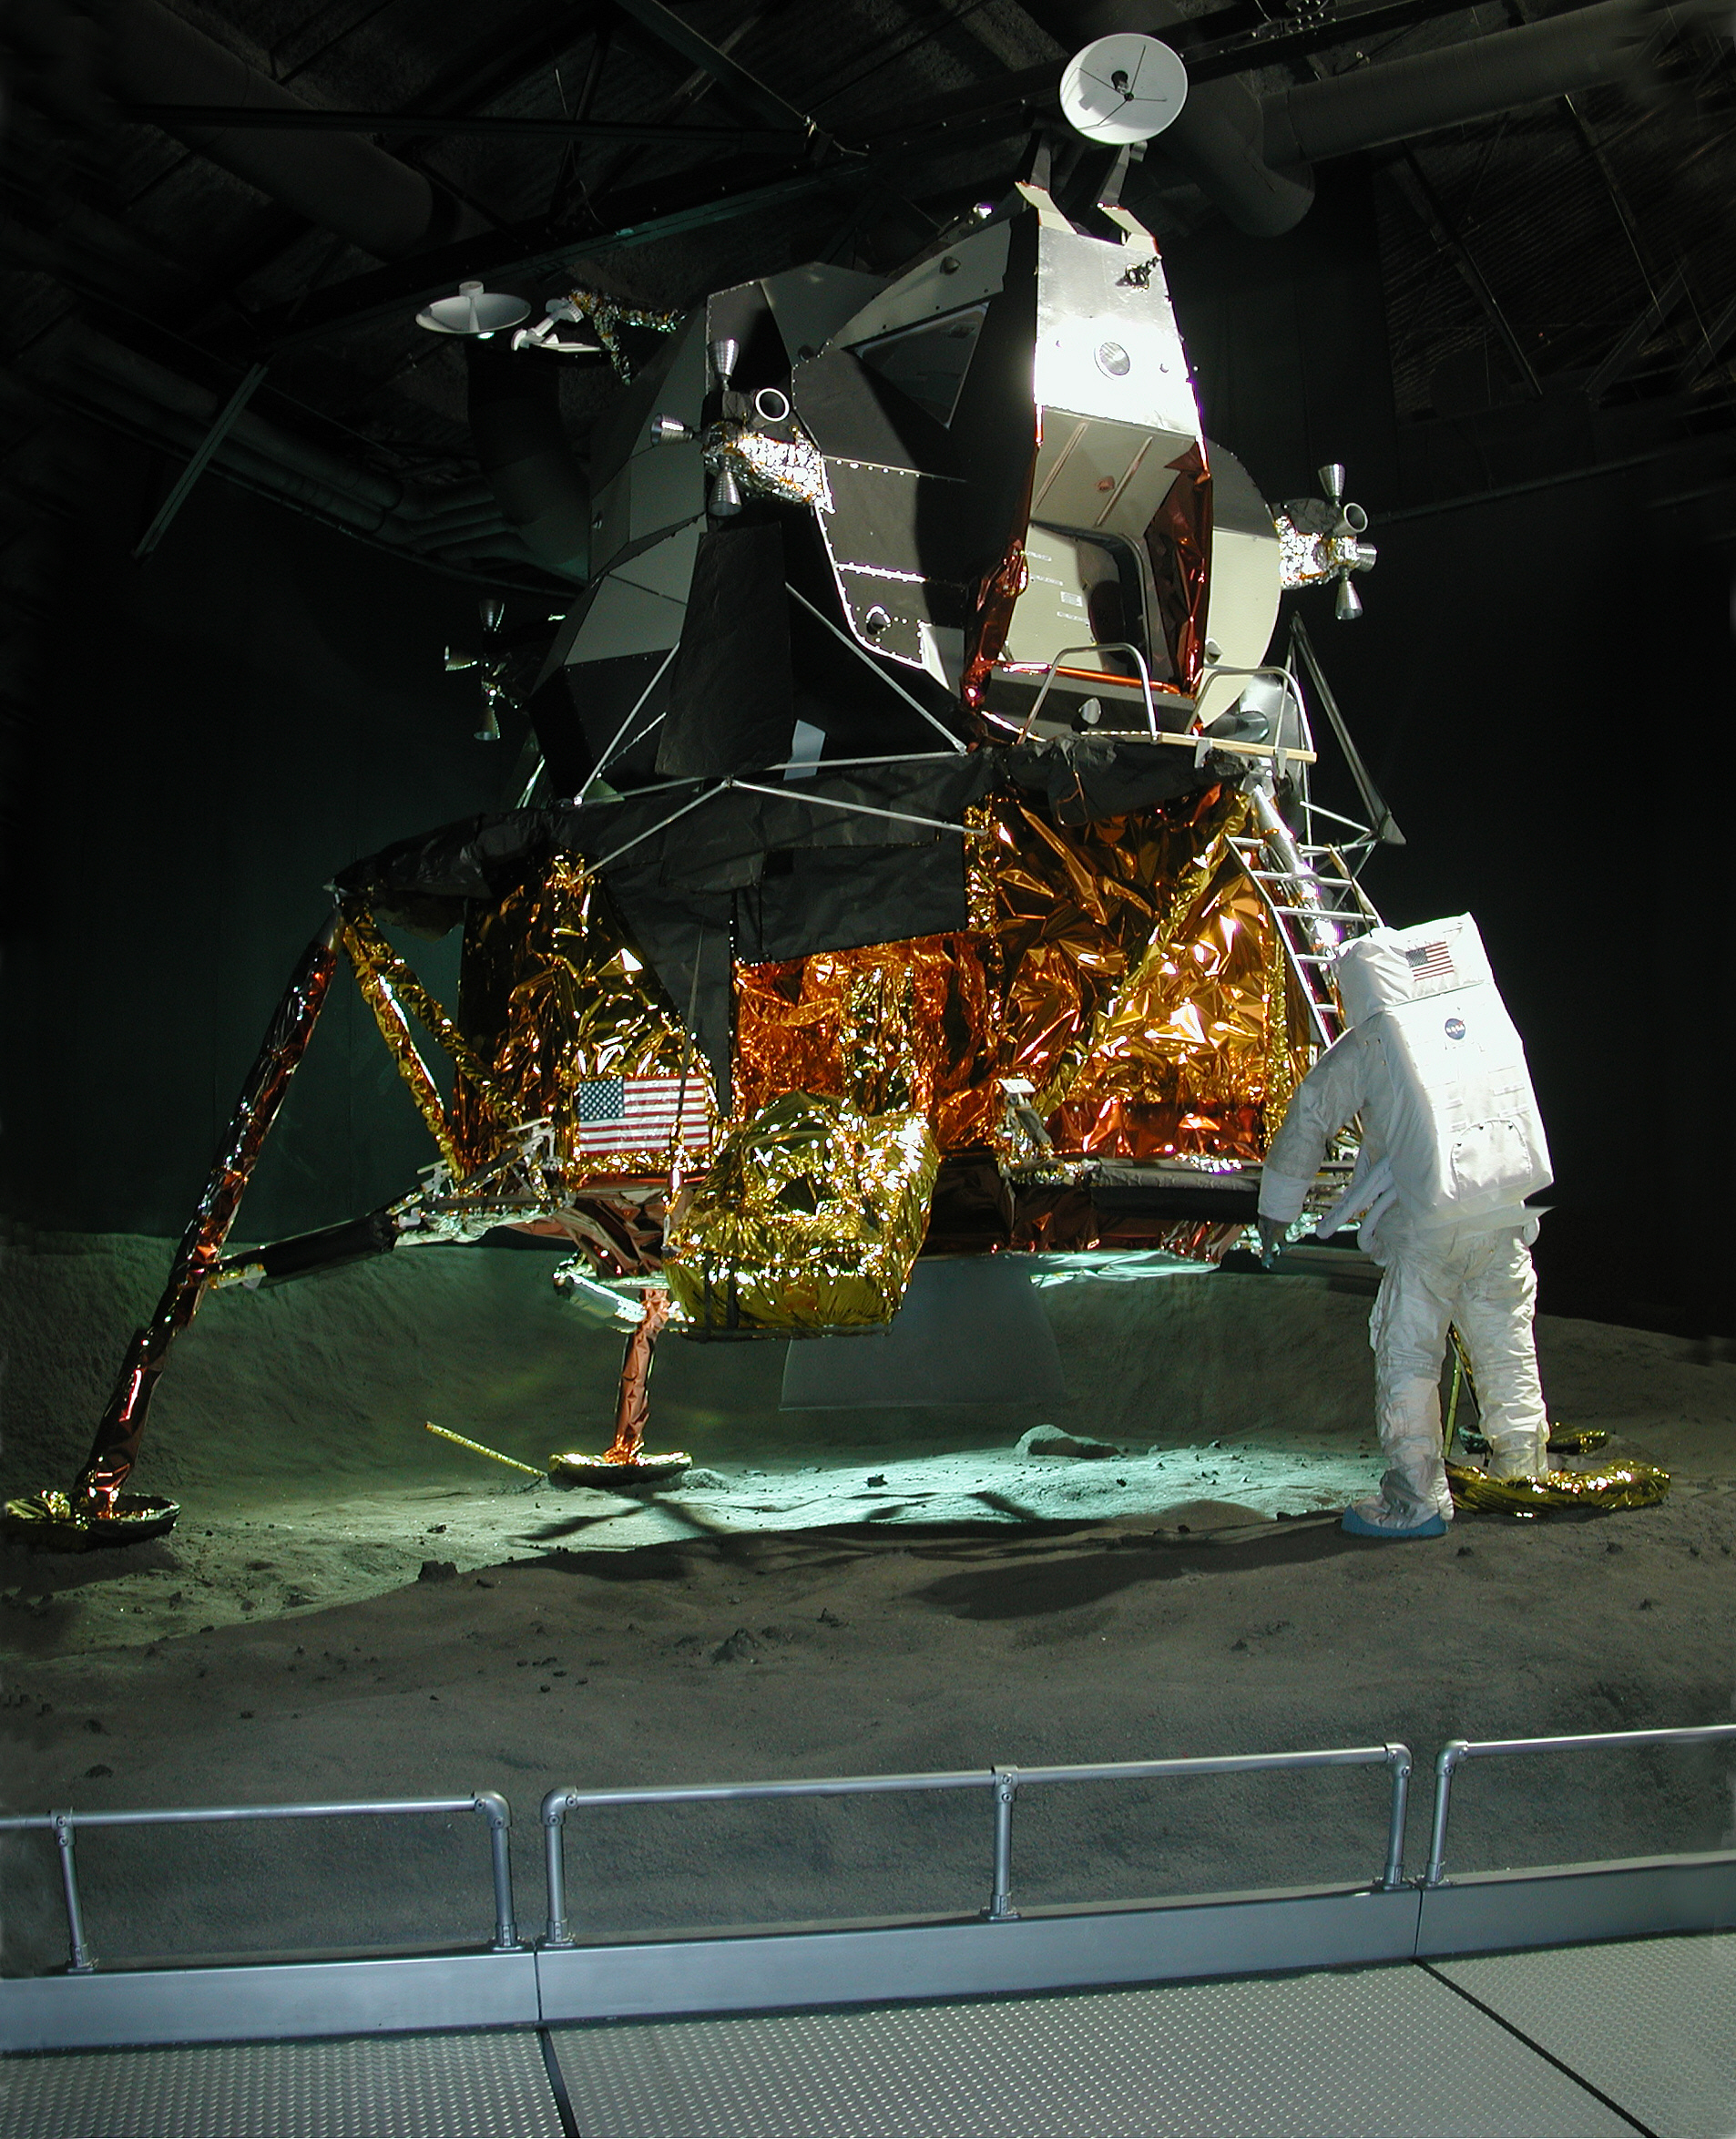 LM-13 (Cradle LM) on simulated lunar surface, Cradle of Aviation Museum